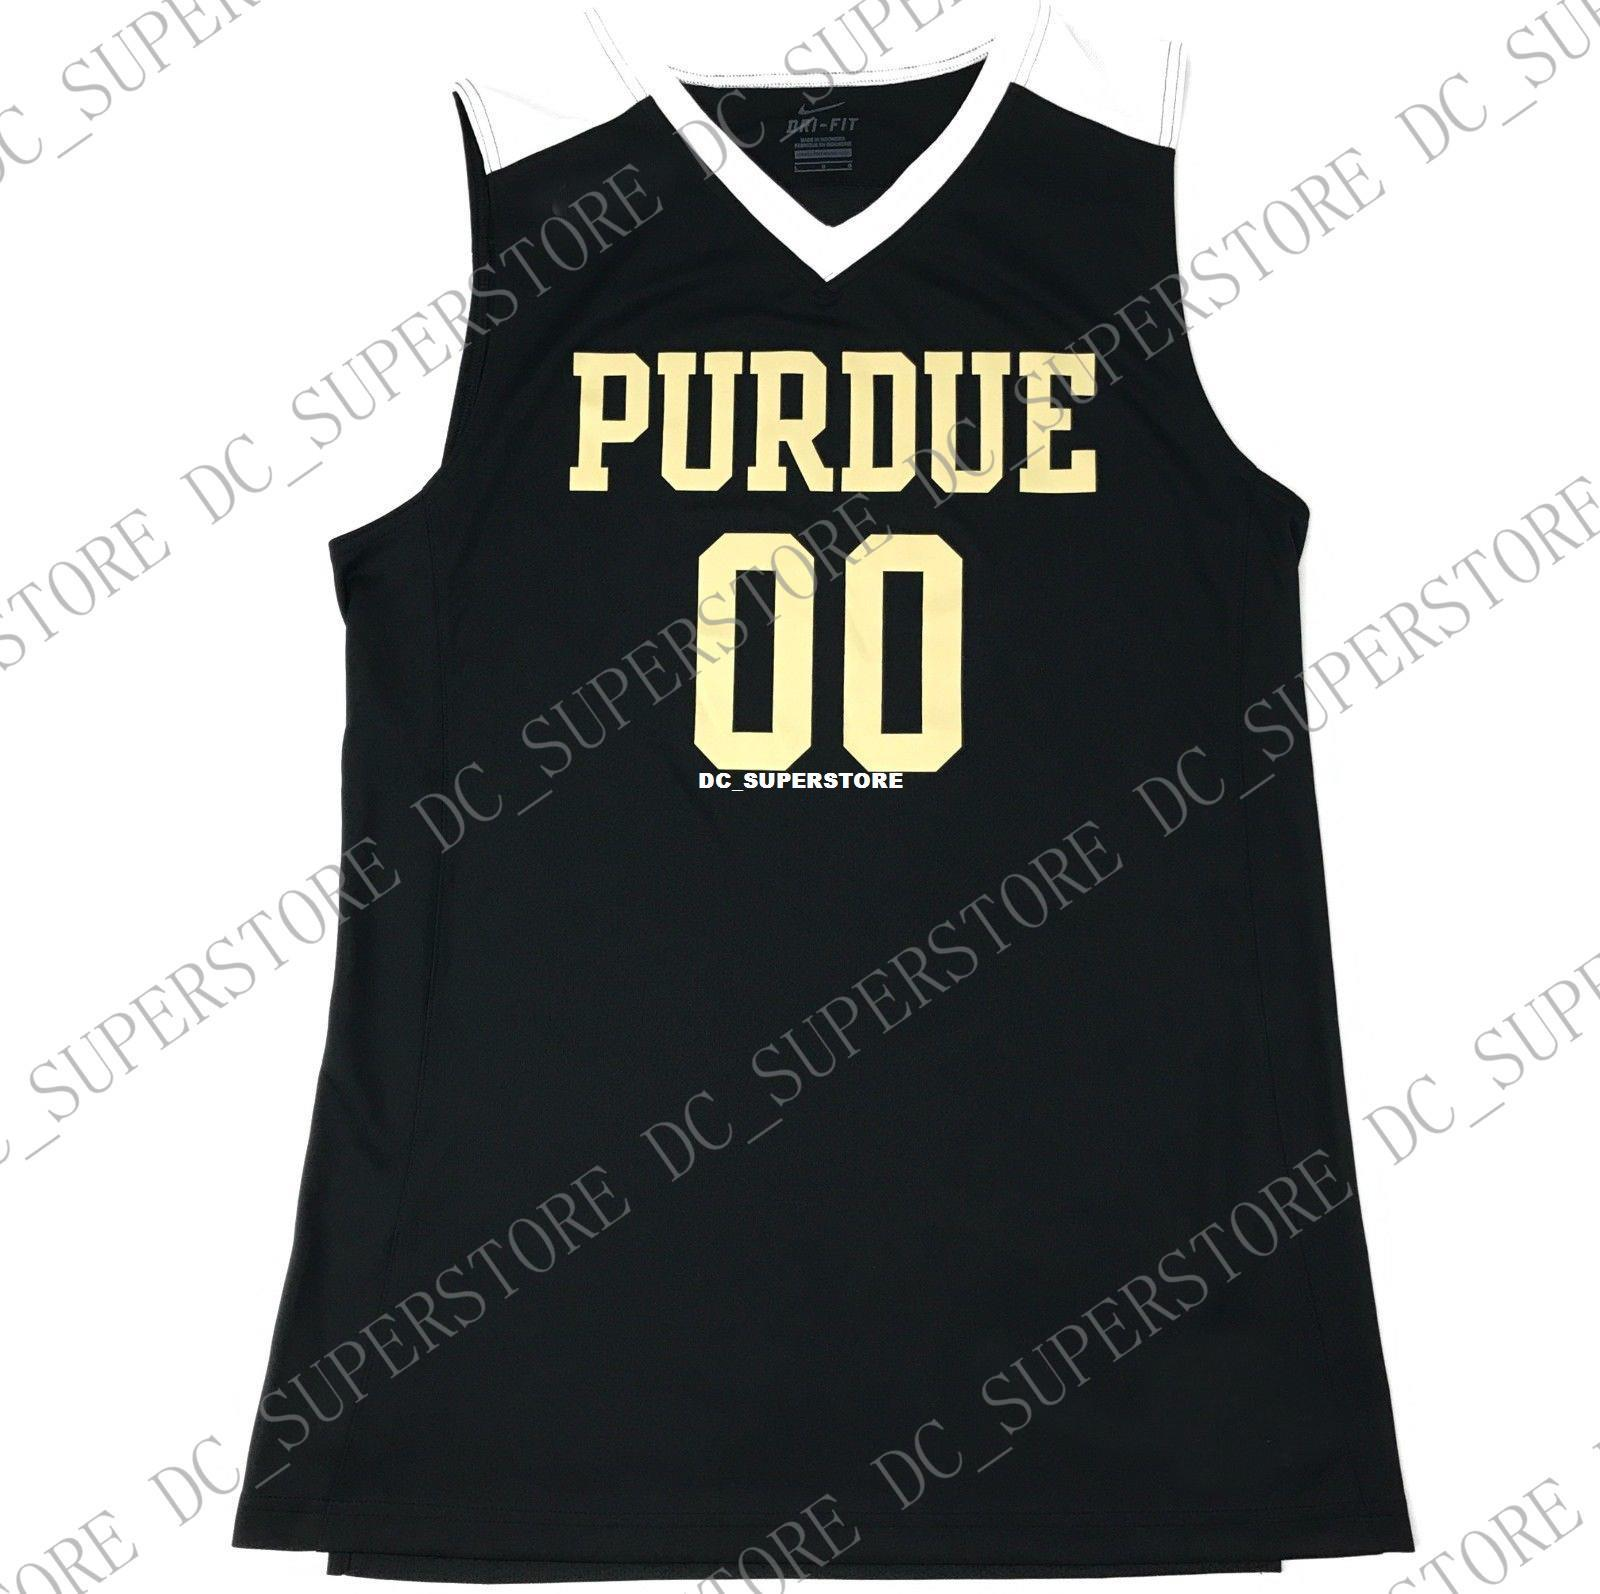 3523300d738 2019 Cheap Custom New Purdue Boilermakers Basketball Jersey Black Gold  White Stitched Customize Any Number Name MEN WOMEN YOUTH XS 5XL From  Dc_superstore, ...